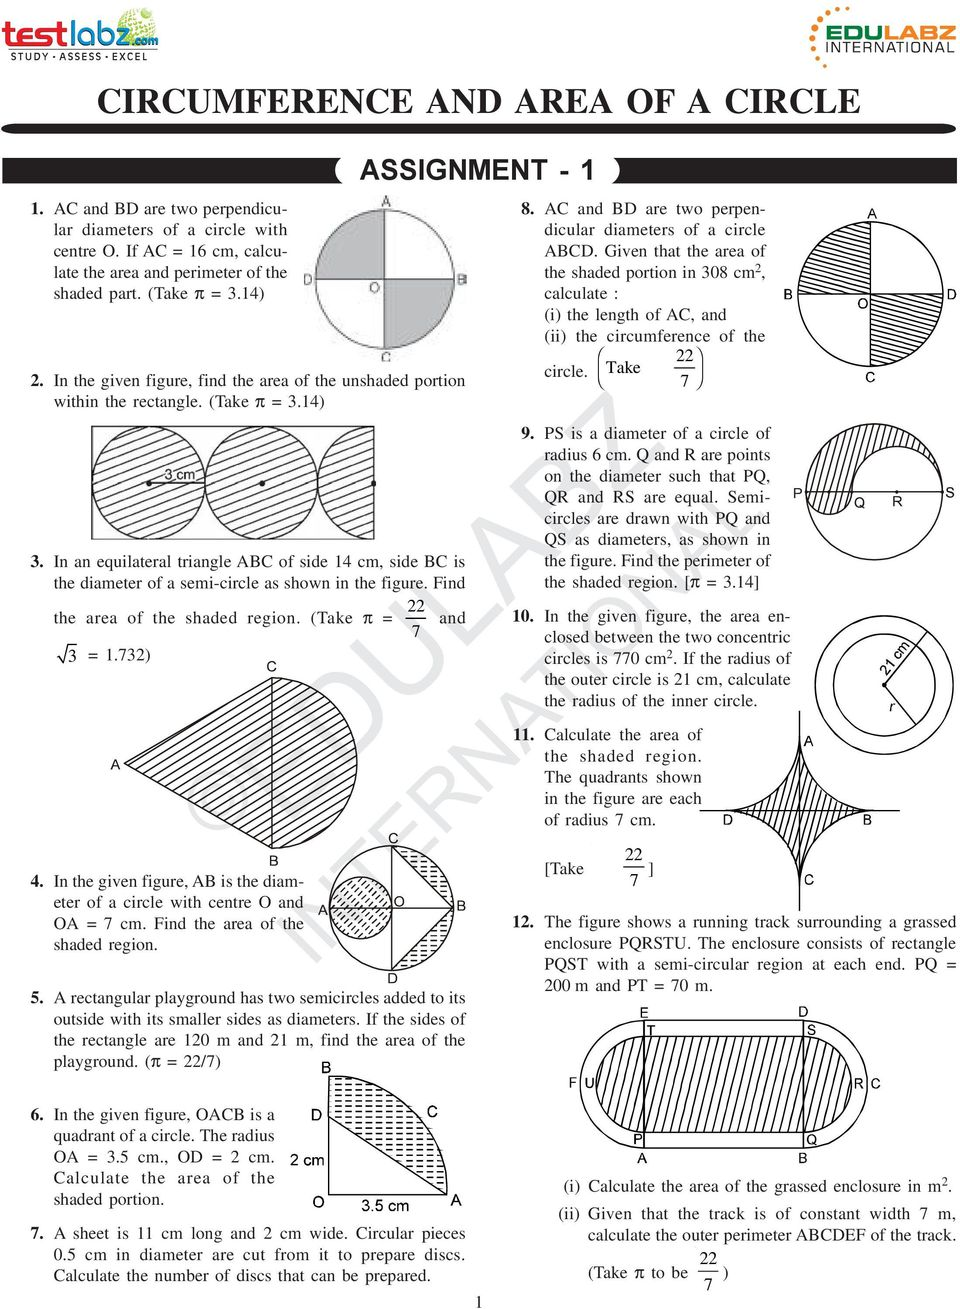 CIRCUMFERENCE AND AREA OF A CIRCLE - PDF